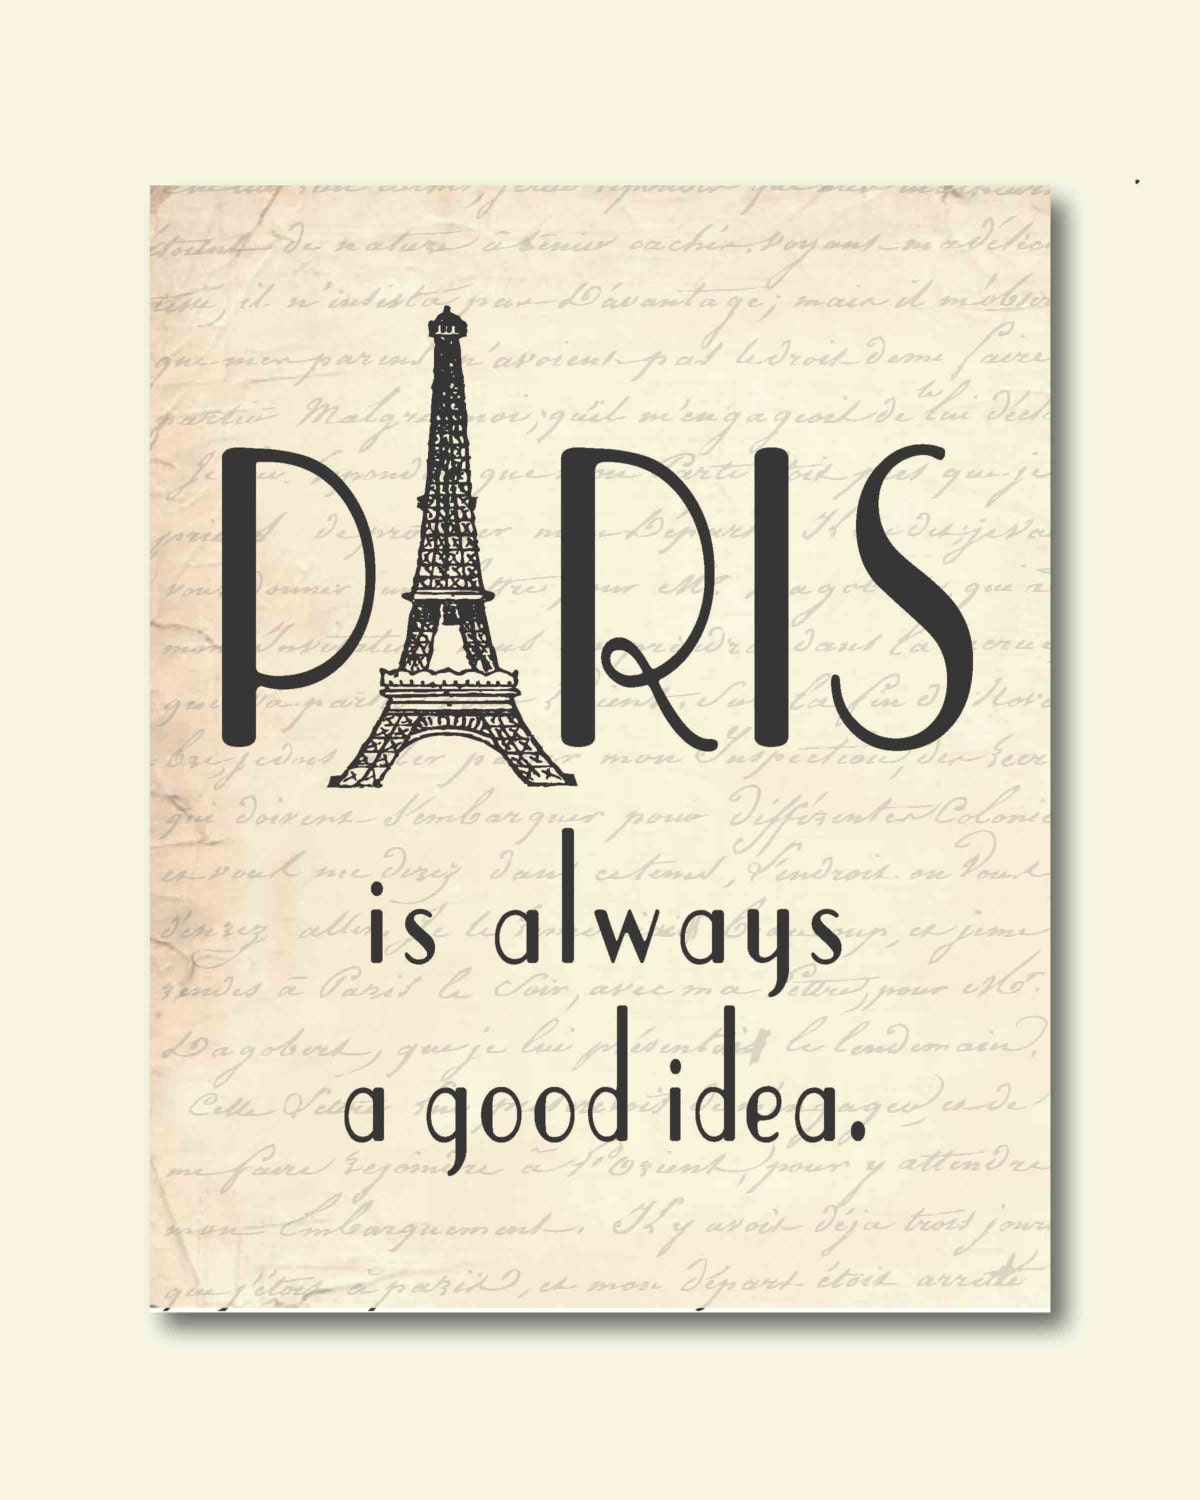 Wall Art - Paris is always a good idea - Audrey Hepburn Quote - Eiffel Tower - France - Typography - 8 x 10 print - SusanNewberryDesigns